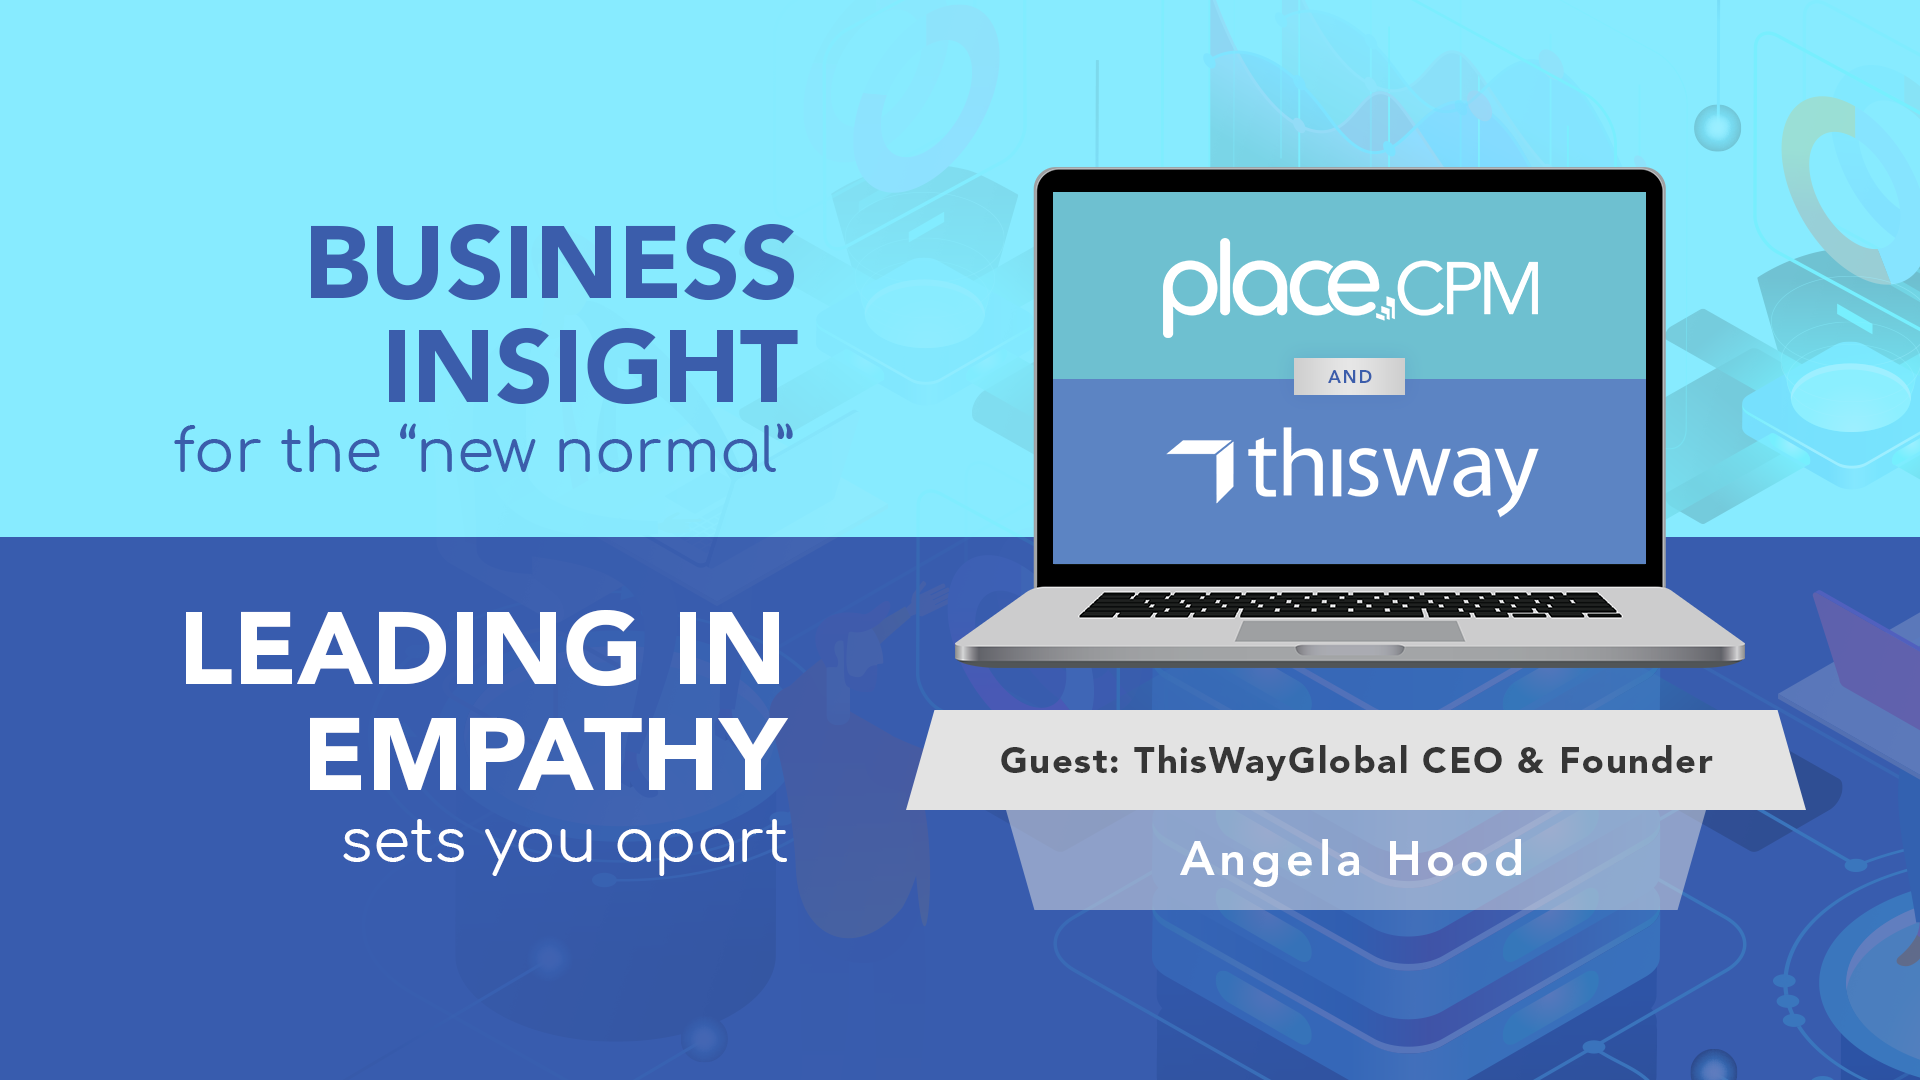 Leading in Empathy with Angela Hood the CEO and Founder of ThisWay Global